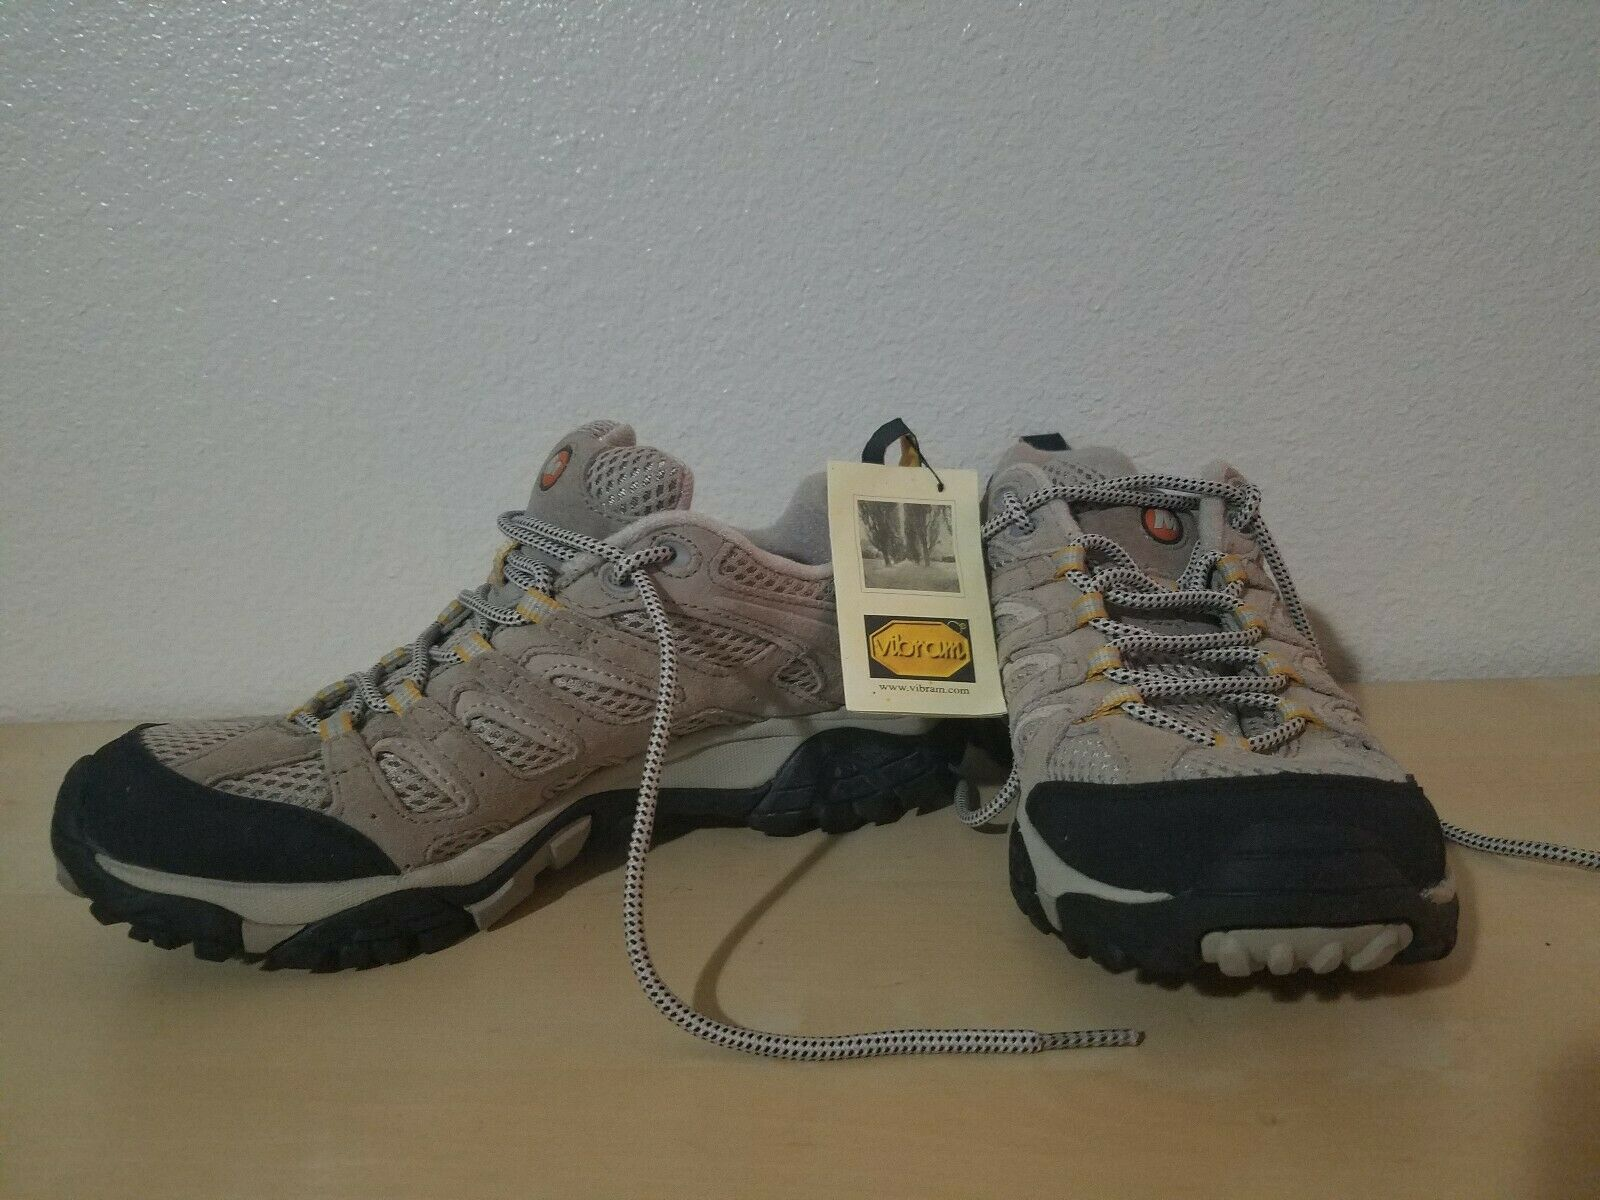 Merrell Womens Moab Ventilator Taupe Hiking Boots Size 8 Eur 38.5 Nwt Vibram